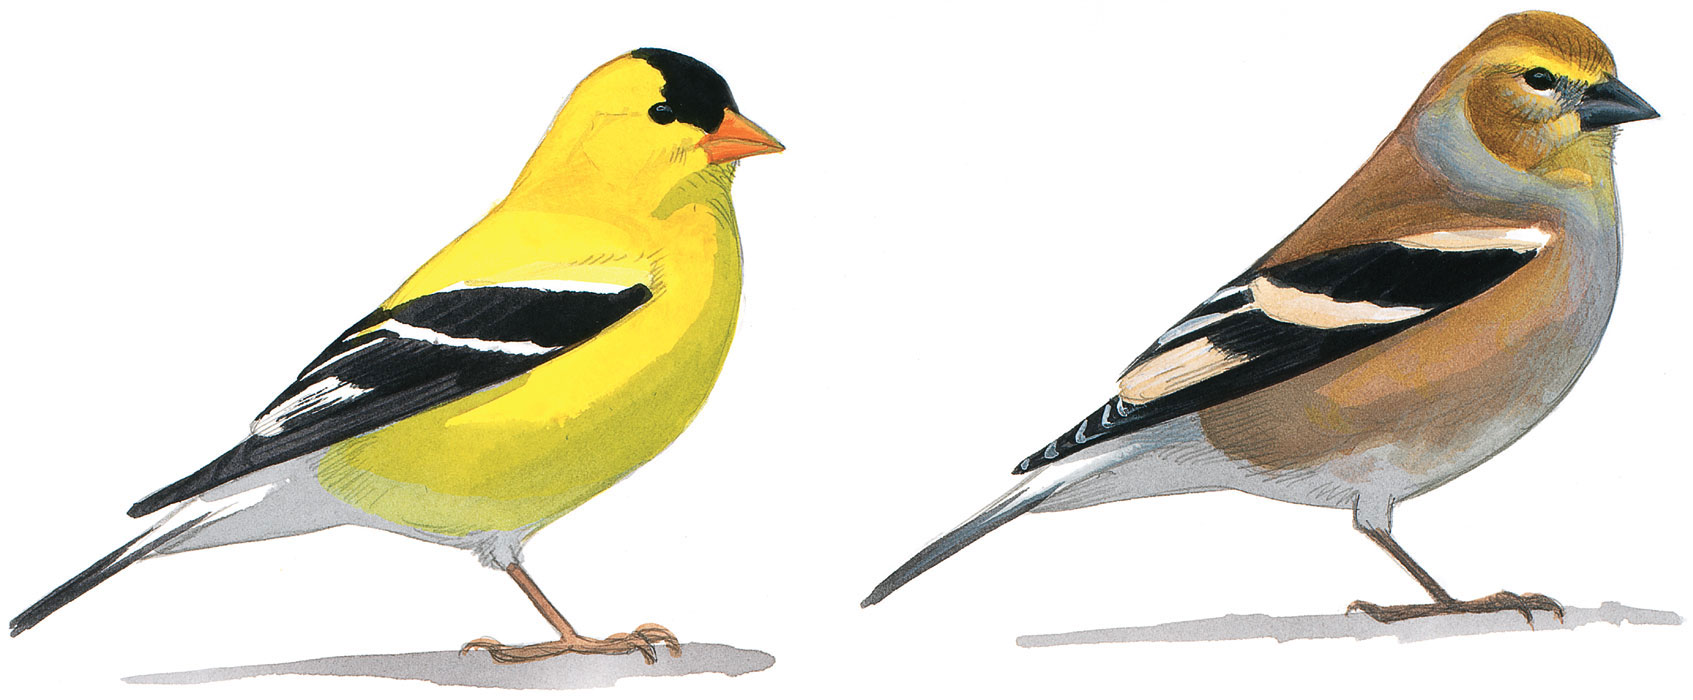 A male American Goldfinch in drab winter plumage (right) and bright yellow summer plumage (left). Illustration: David Allen Sibley